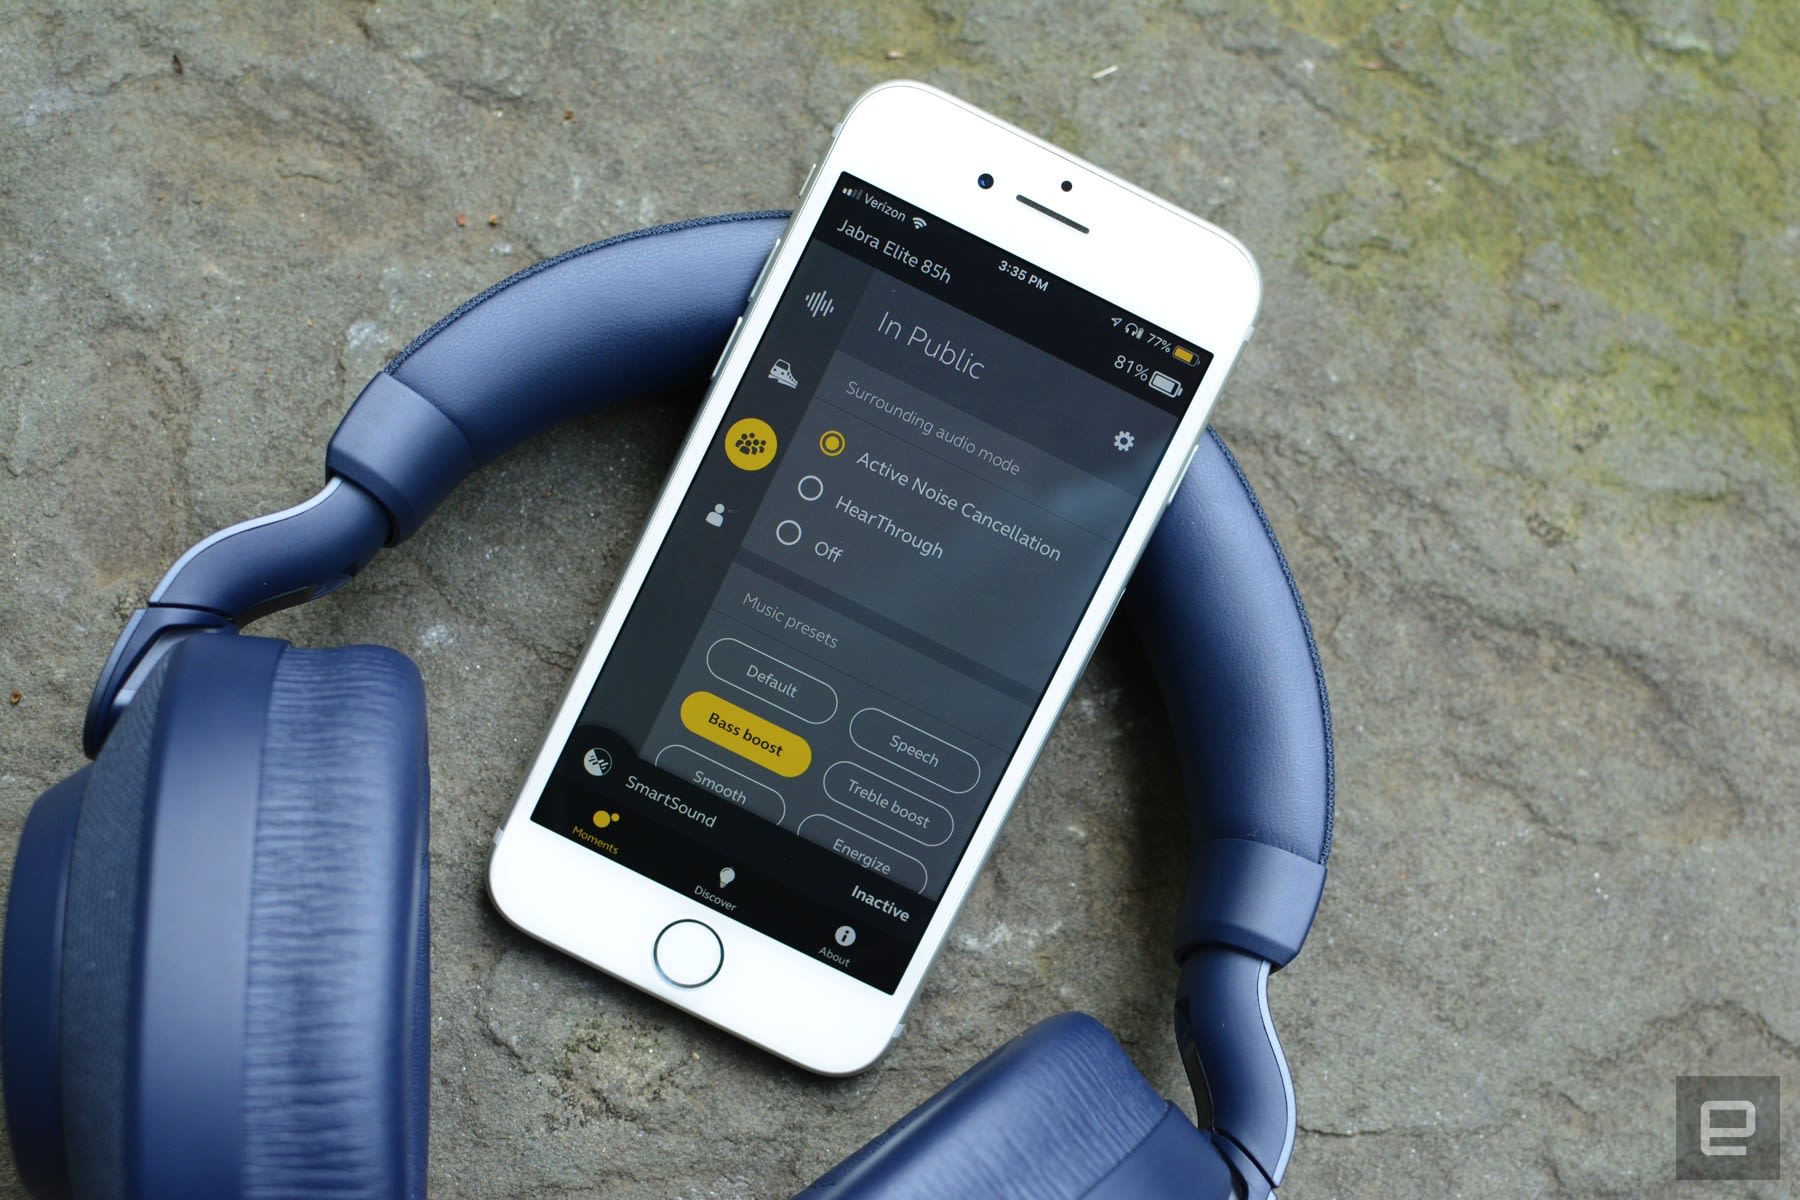 Jabra Elite 85h review: Noise cancellation to rival Bose and Sony